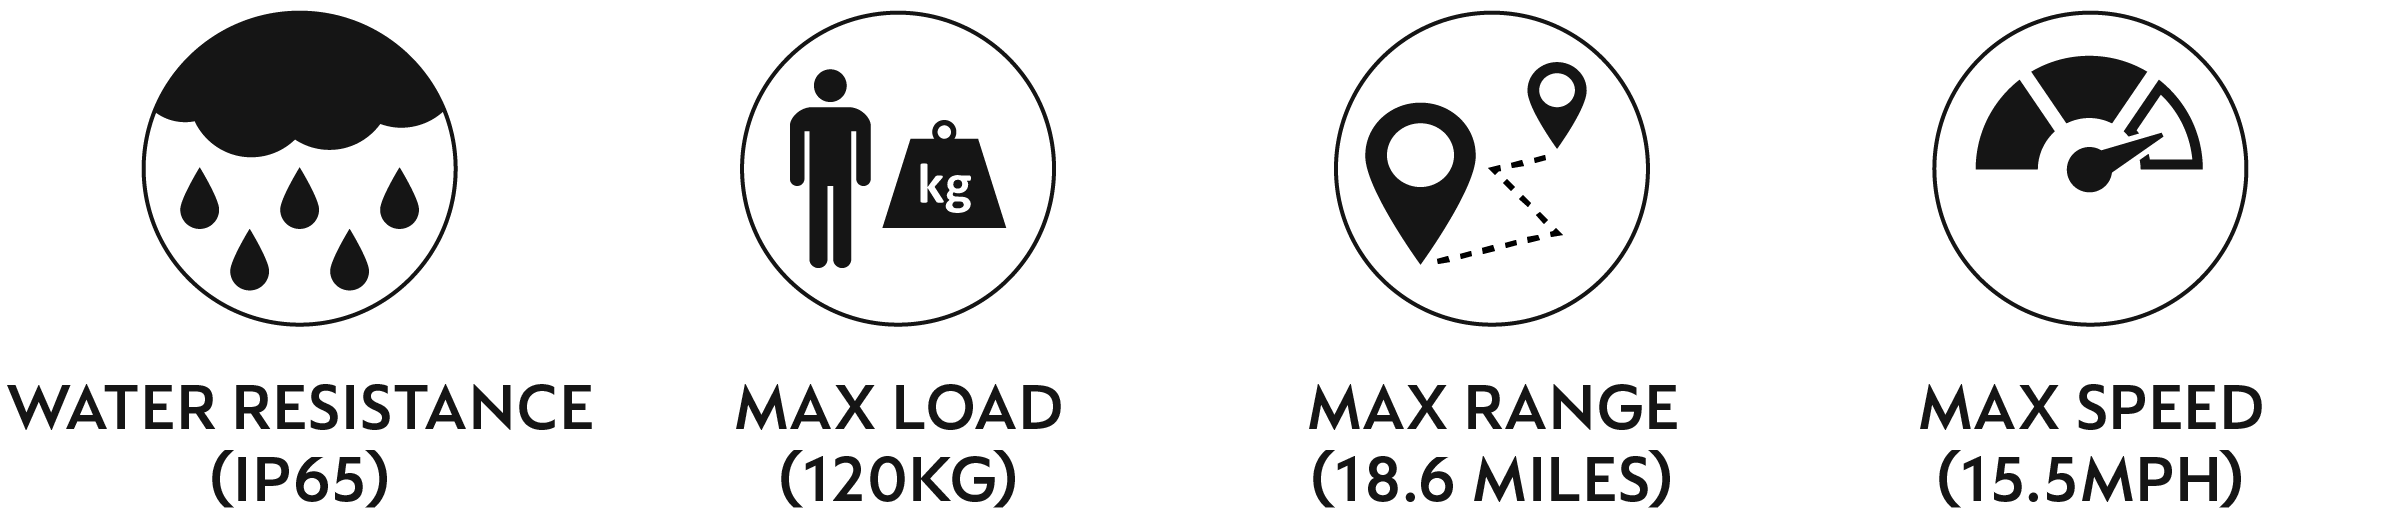 Pure Air Electric Scooter. Water Resistance IP65, Max Load 120kg, Max Speed 15.5mph, Max Range, 18.6 Miles